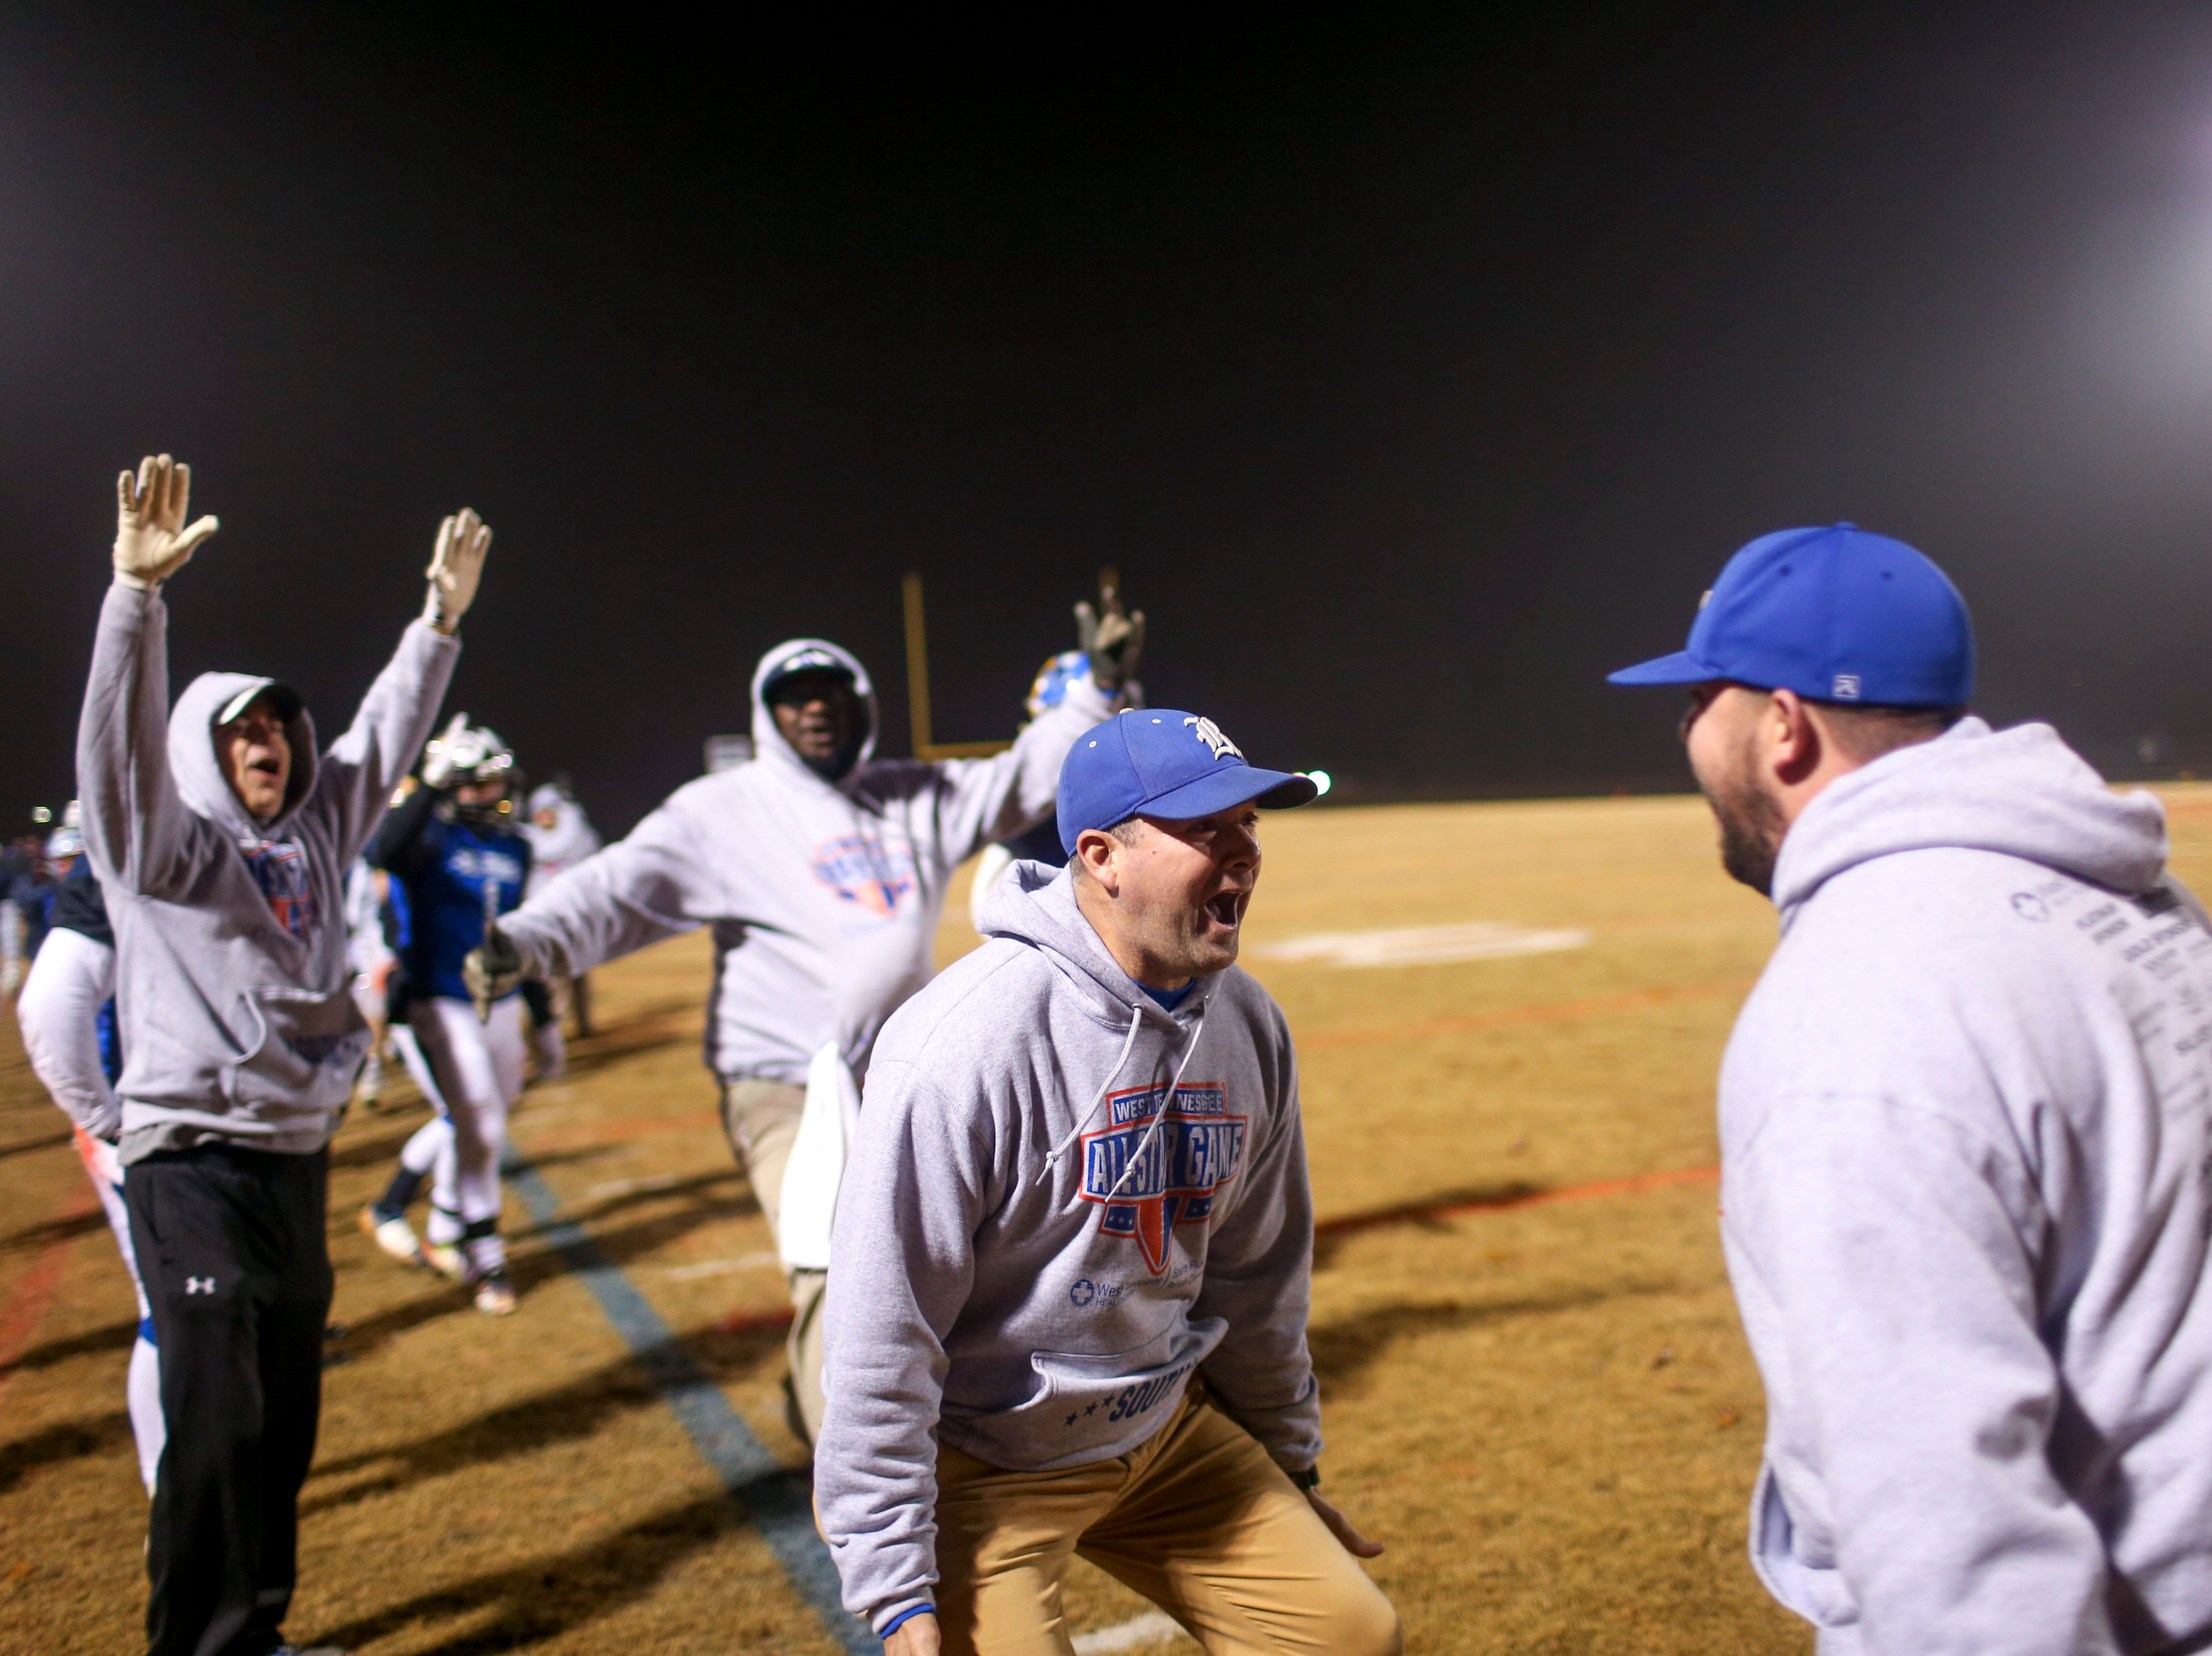 South's coaching staff look towards one another and celebrate a pick-six during the West Tennessee All-Star football game at University School of Jackson in Jackson, Tenn., on Friday, Dec. 7, 2018.